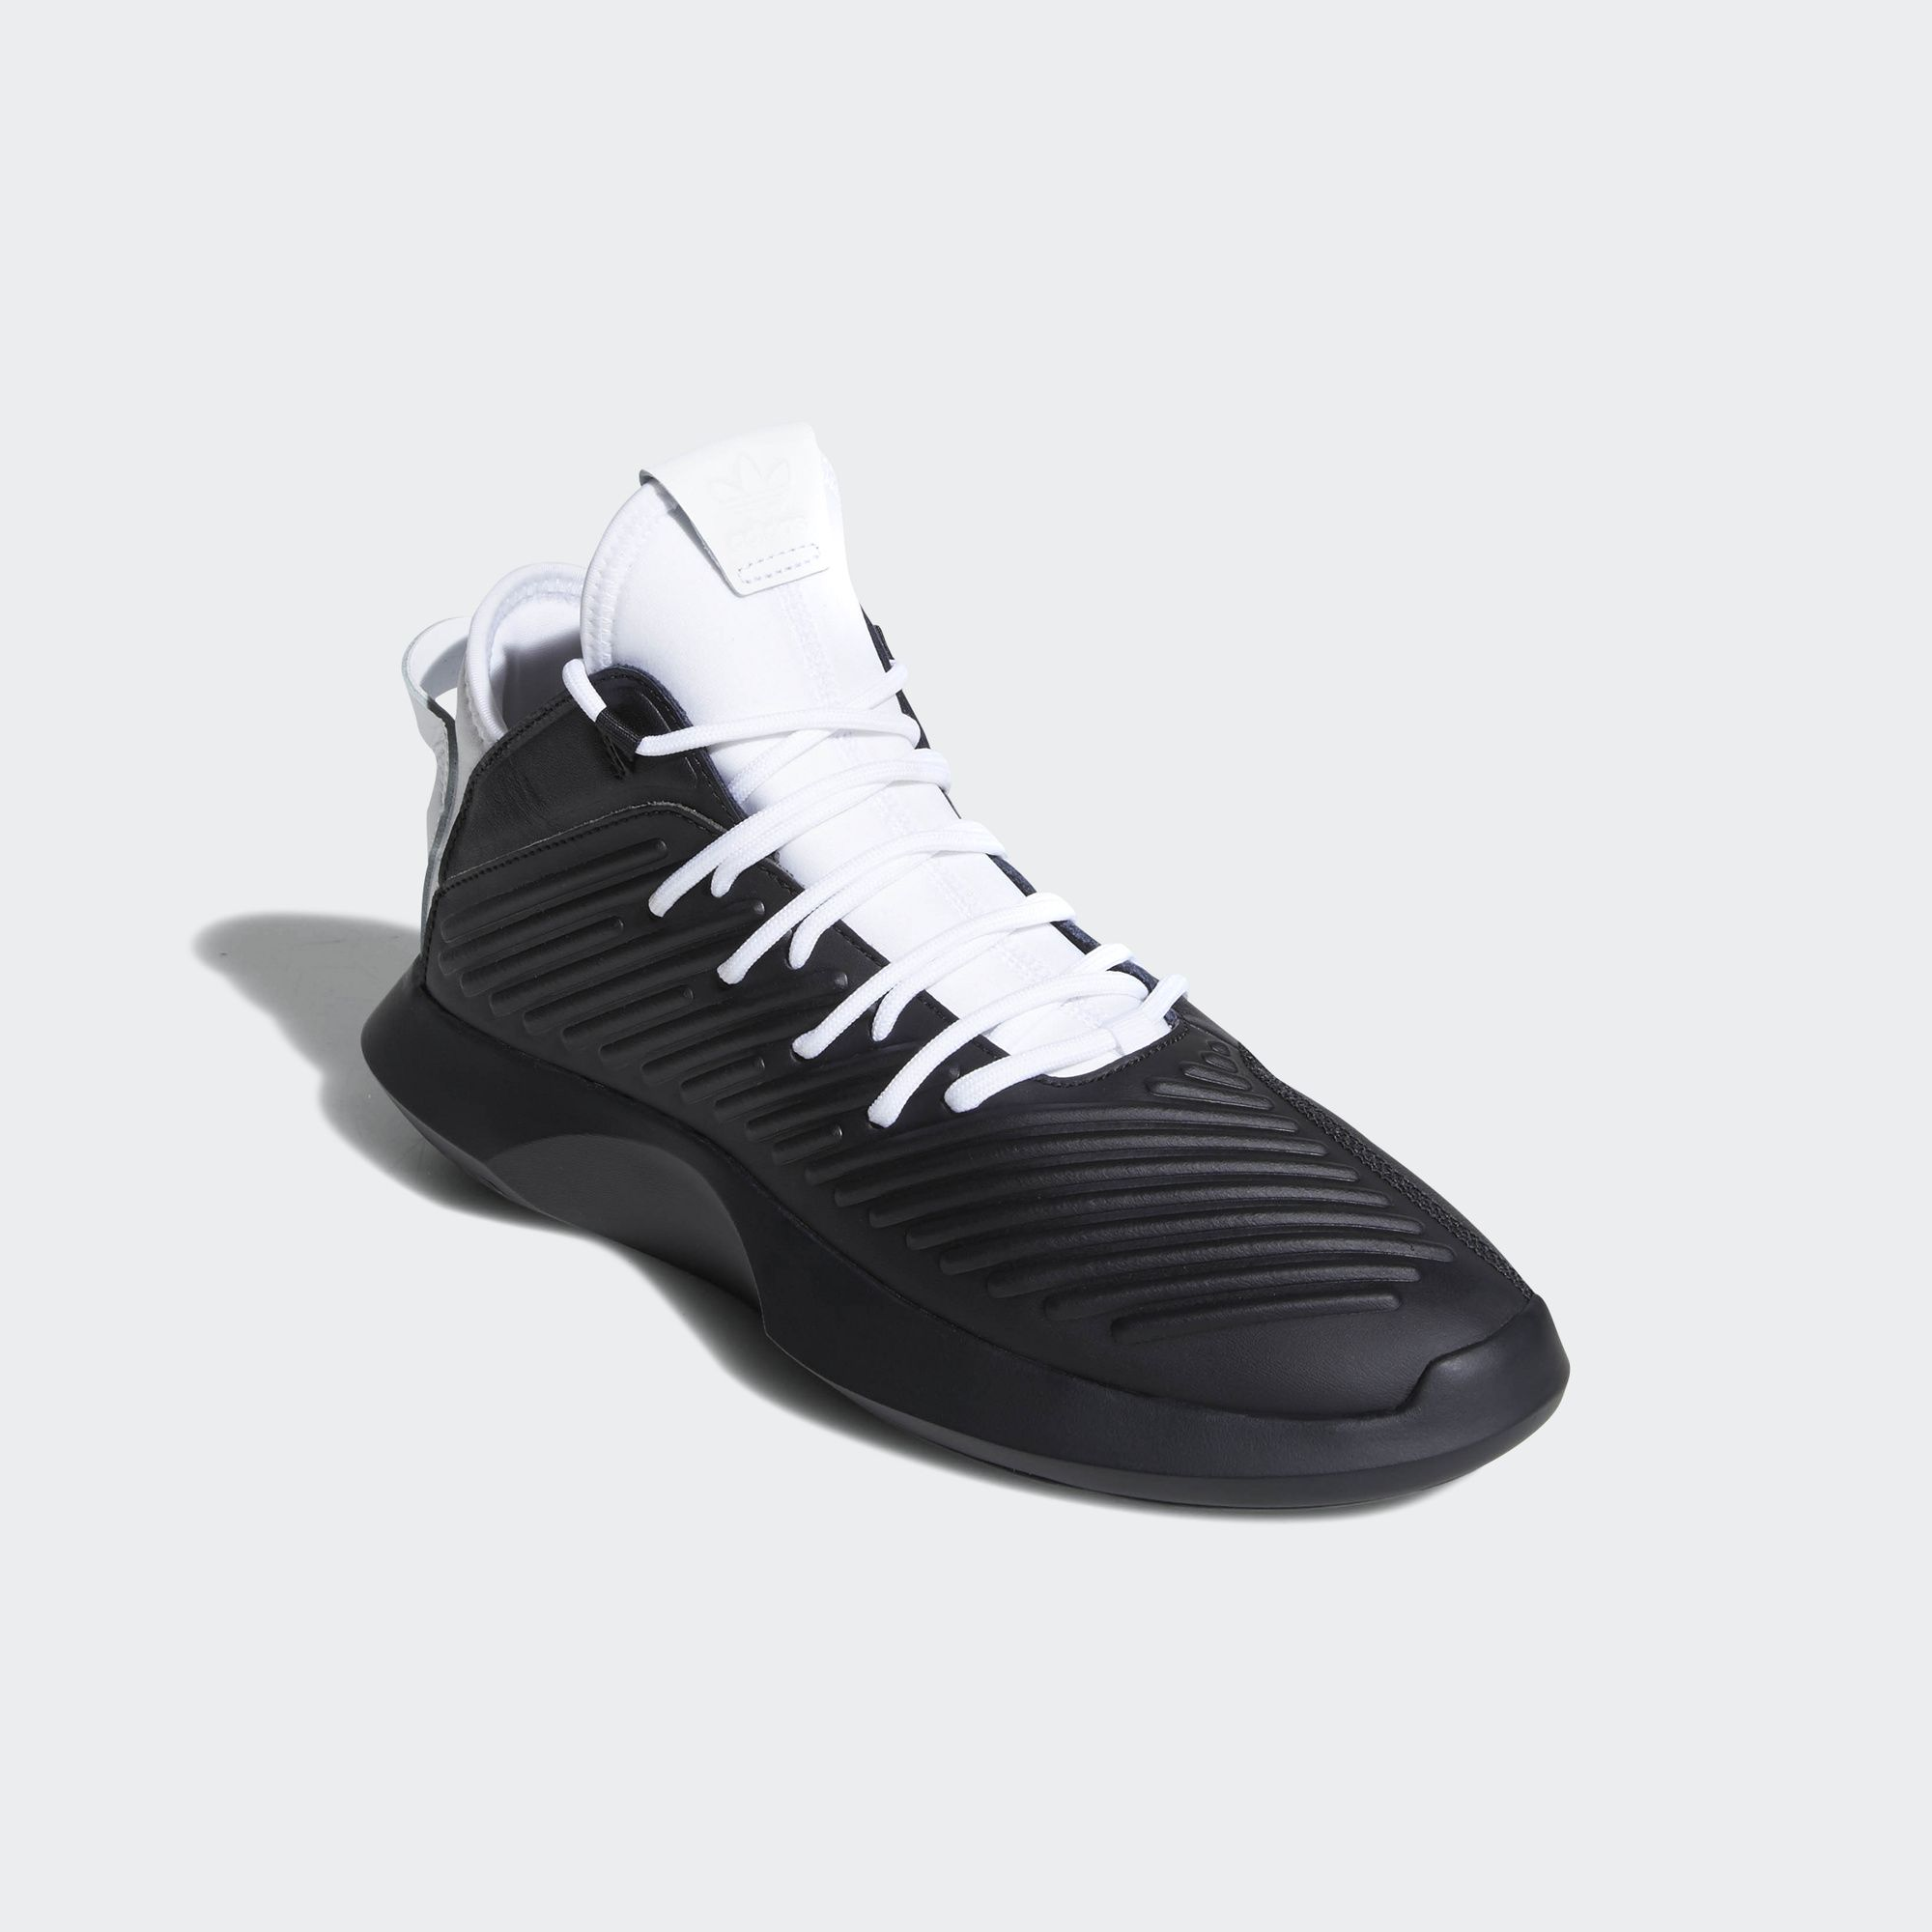 competitive price 9f0c2 6d0a2 ... adidas crazy 1 adv black white 4